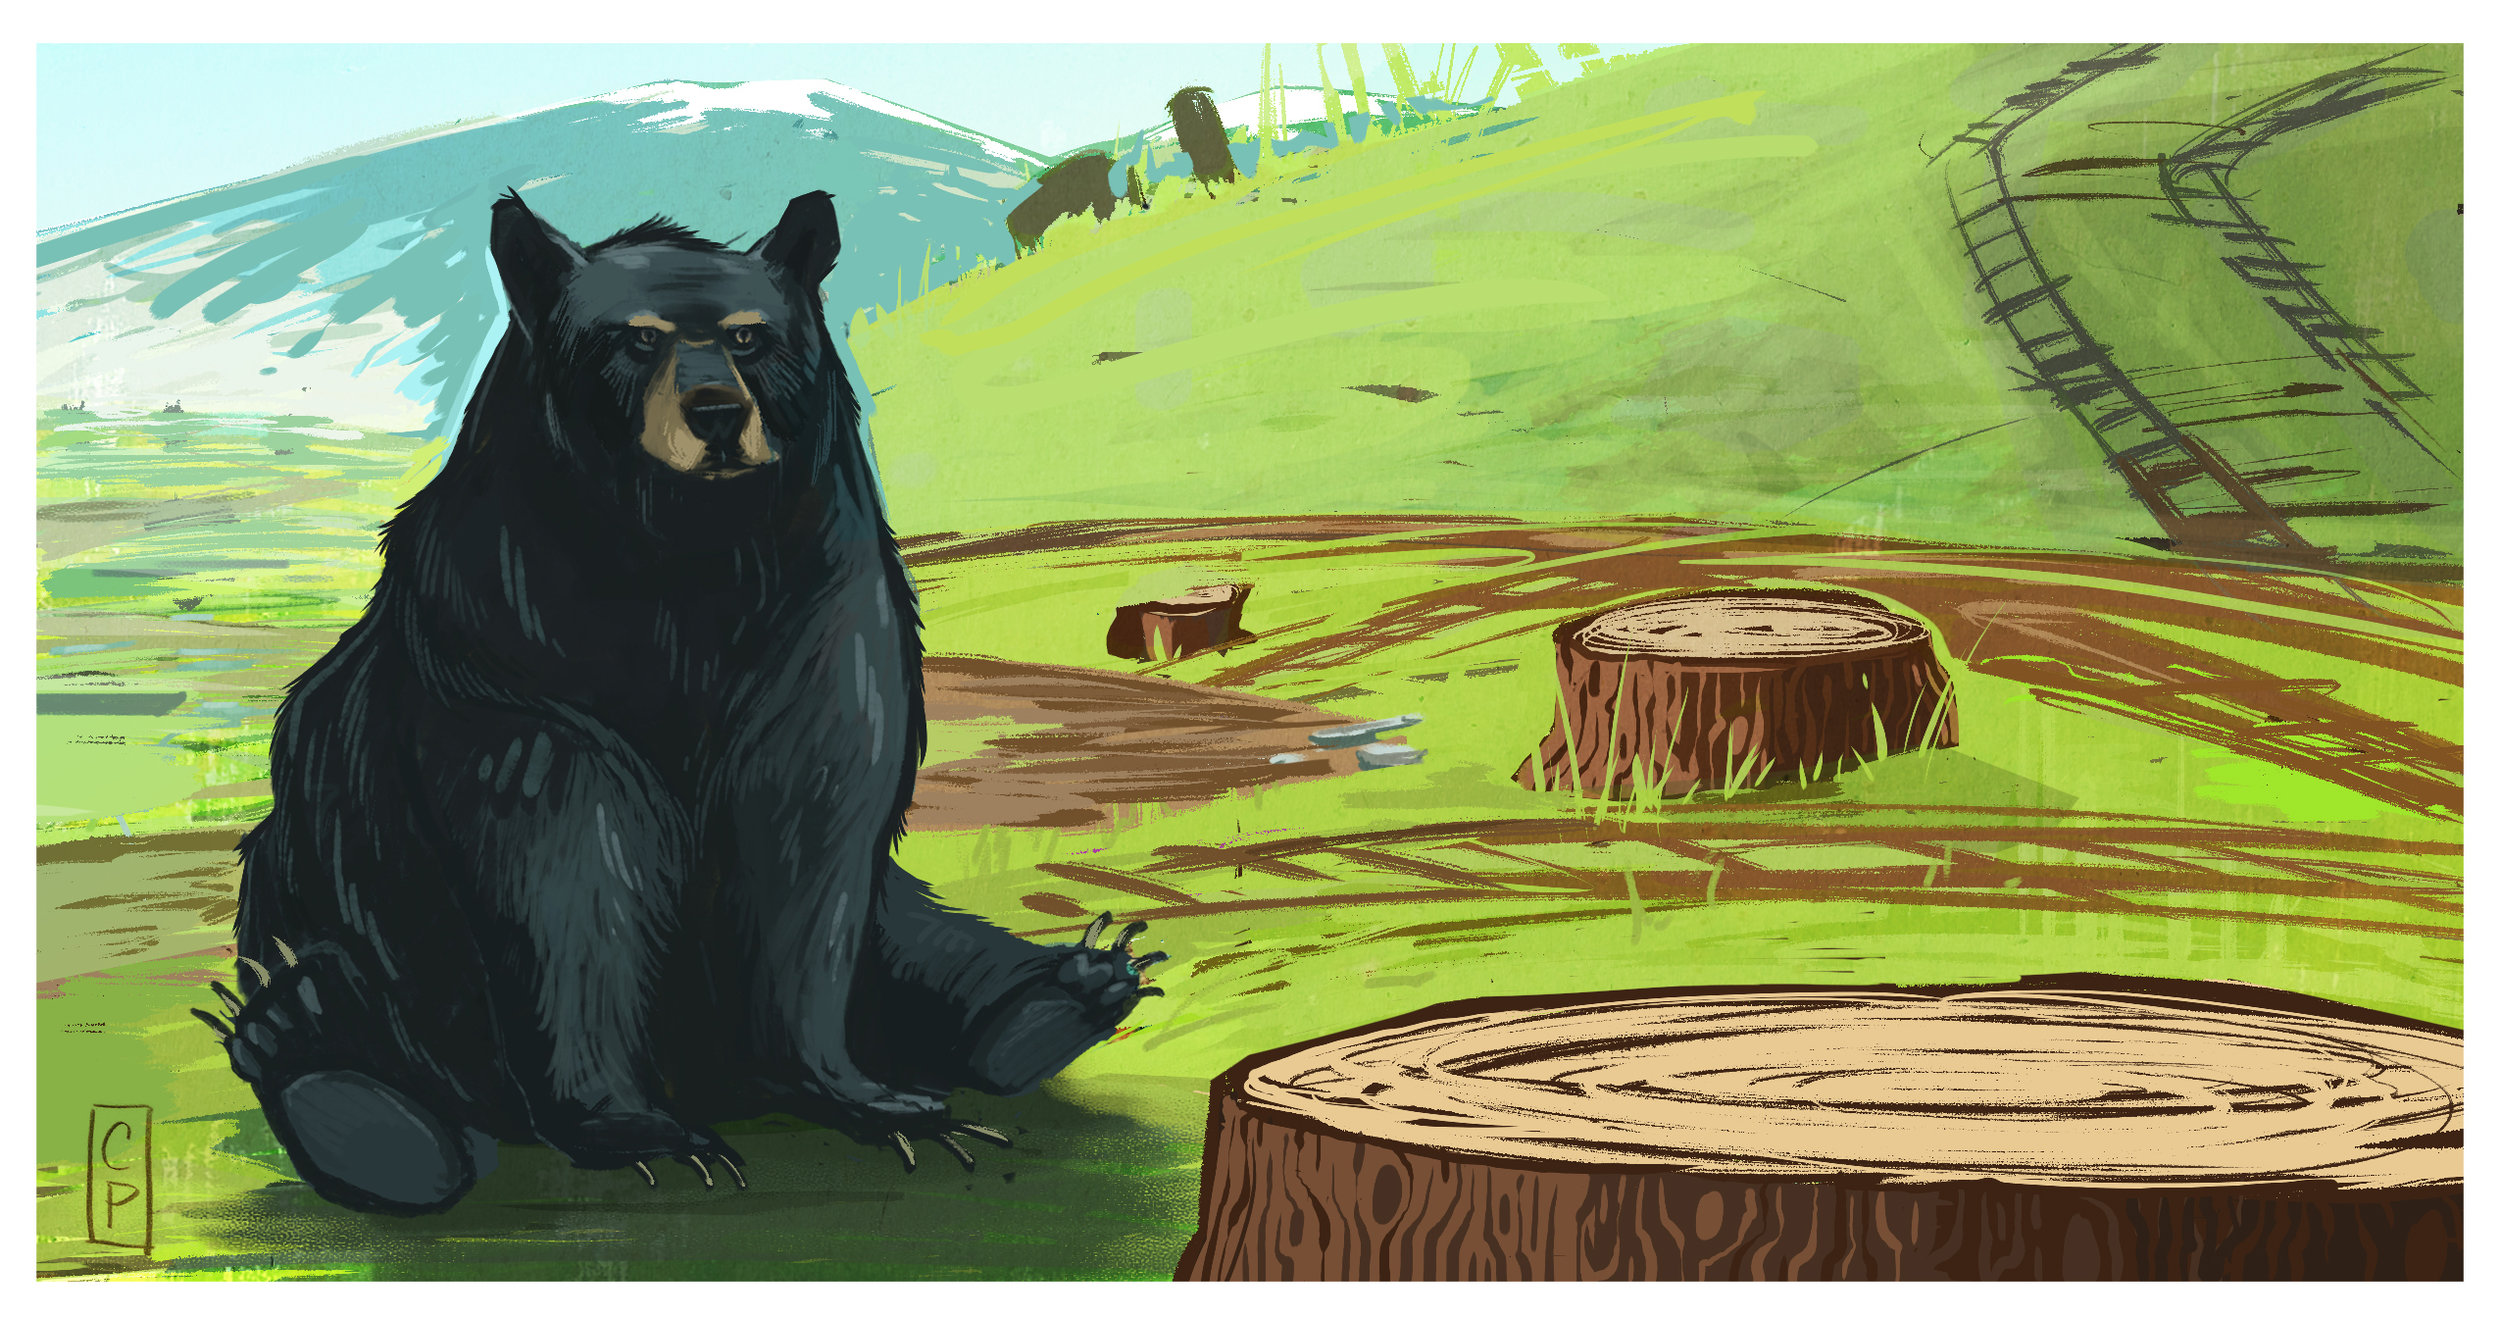 Gone home - Deforestation is on the rise while wildlife populations are dramatically declining. Habitat loss is considered to be the most significant threat to bear species.